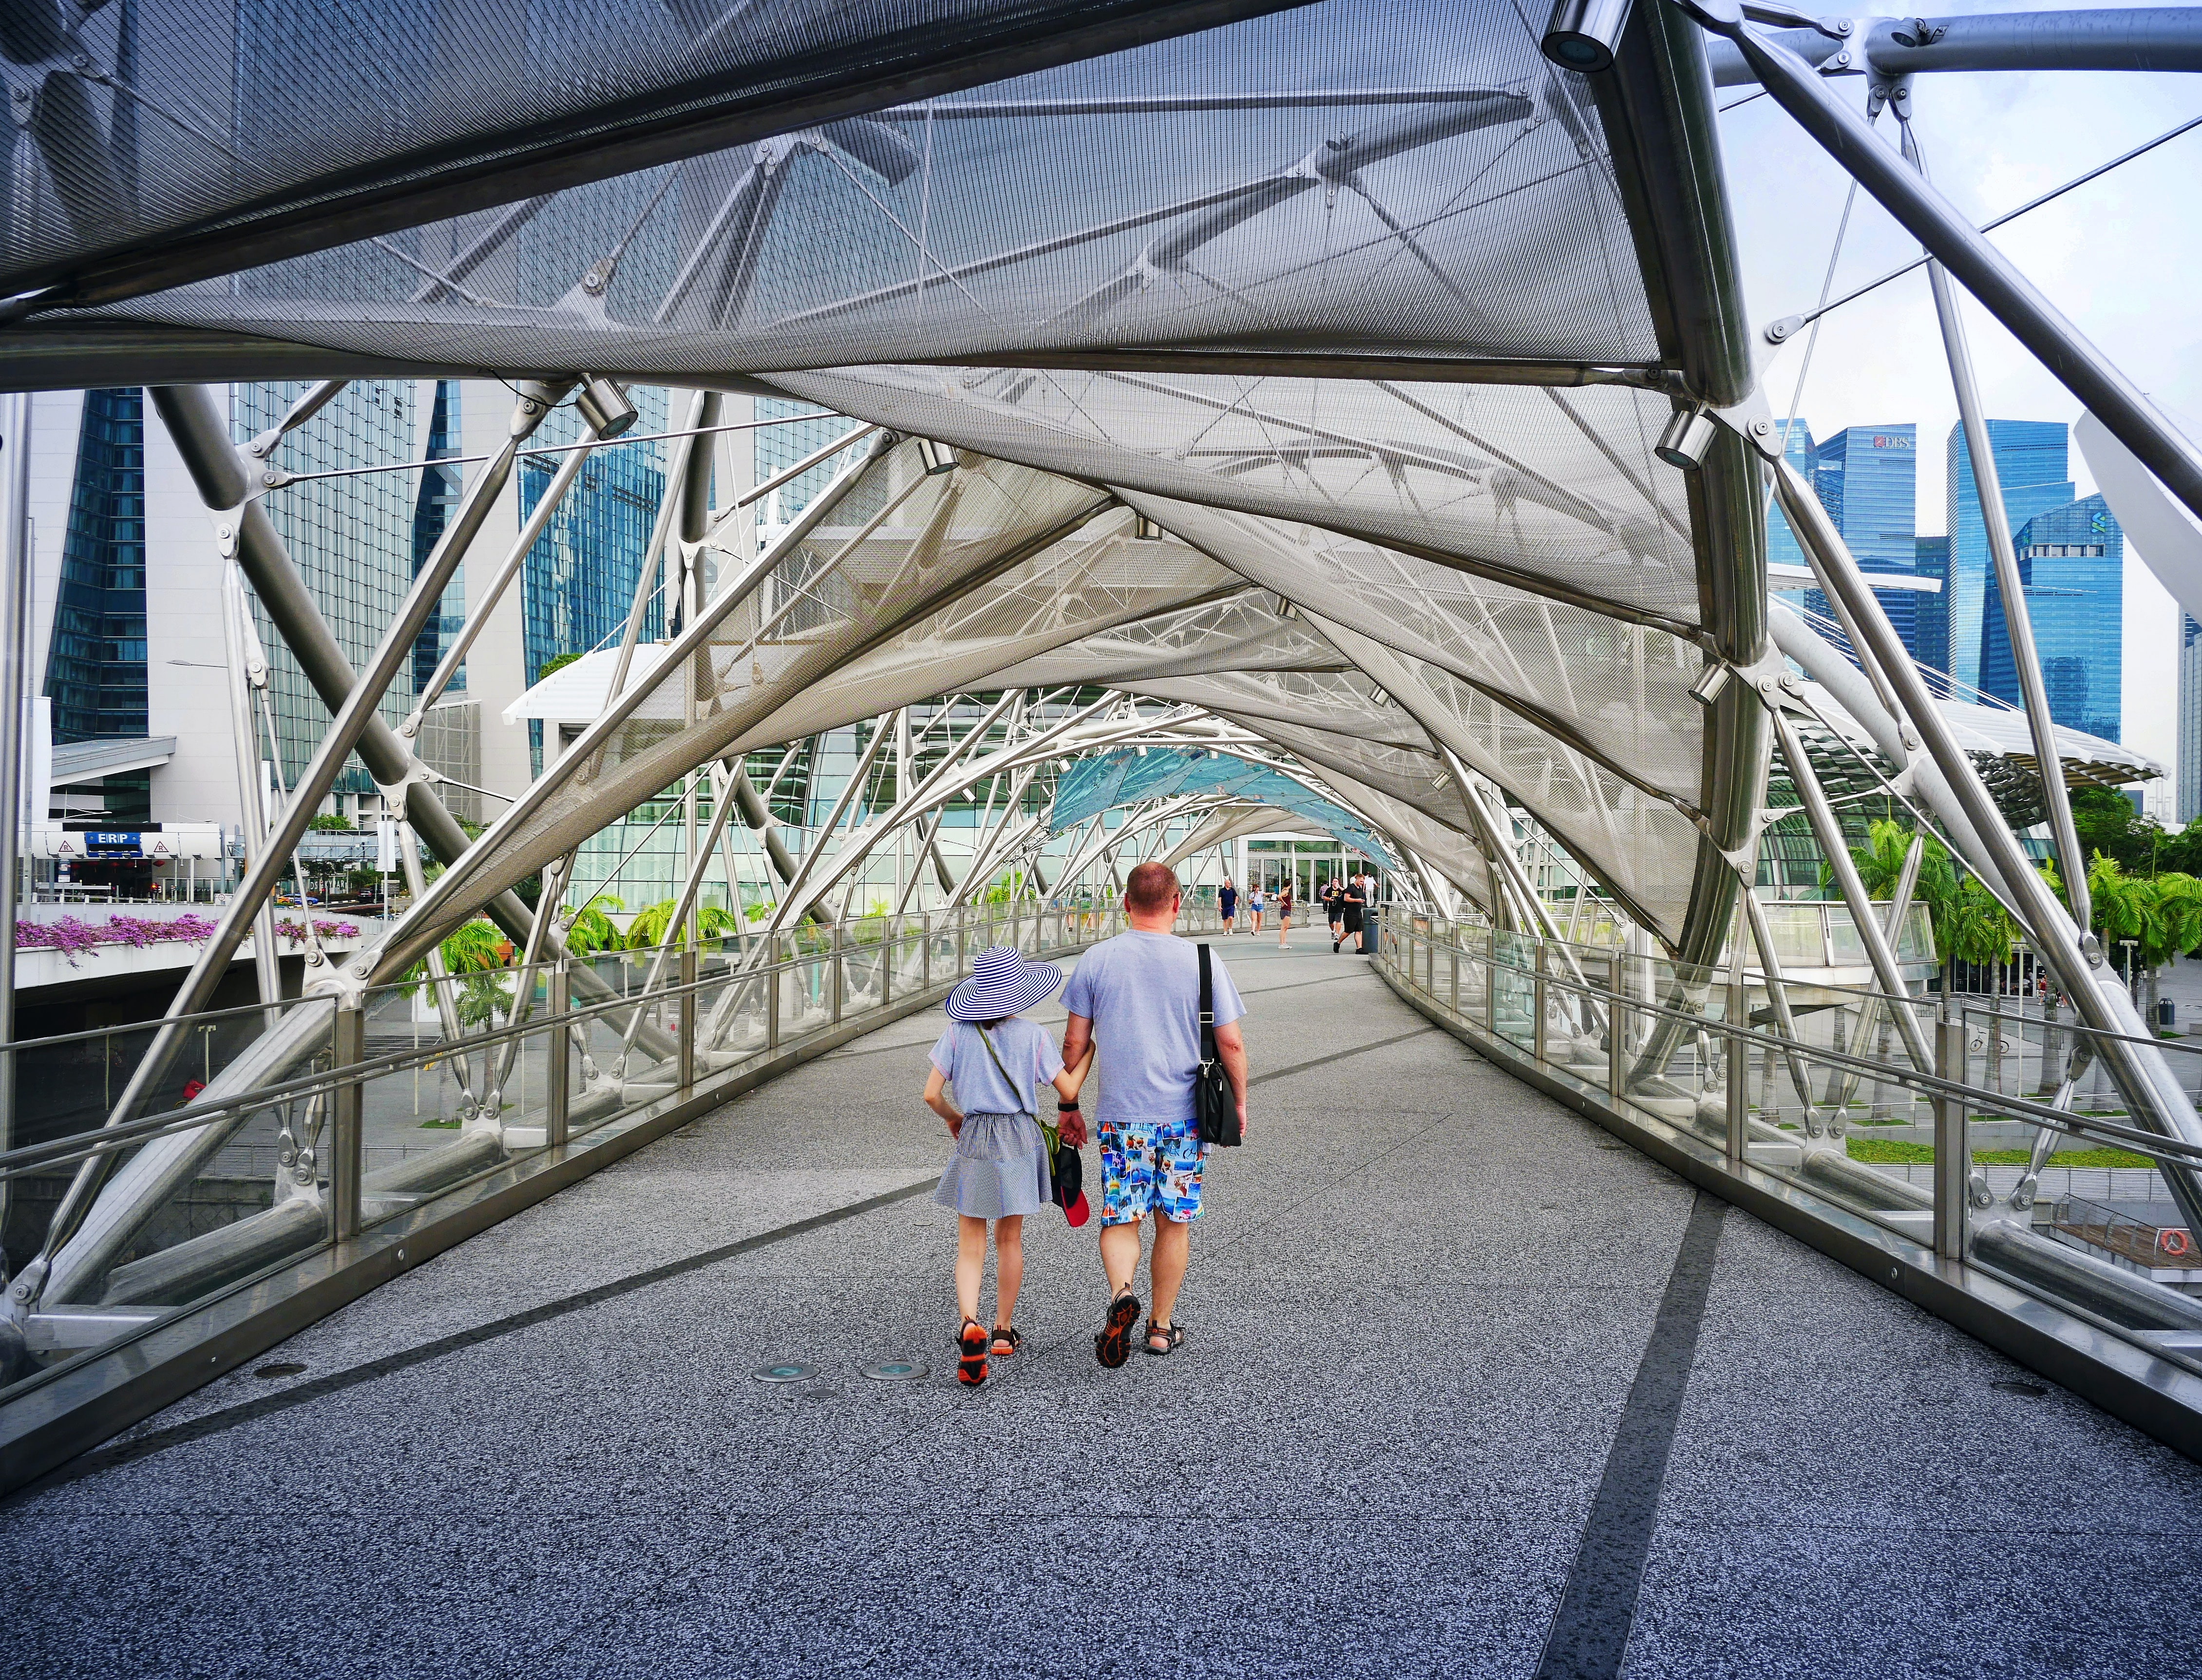 man and woman walking inside clear glass roof pathway at daytime